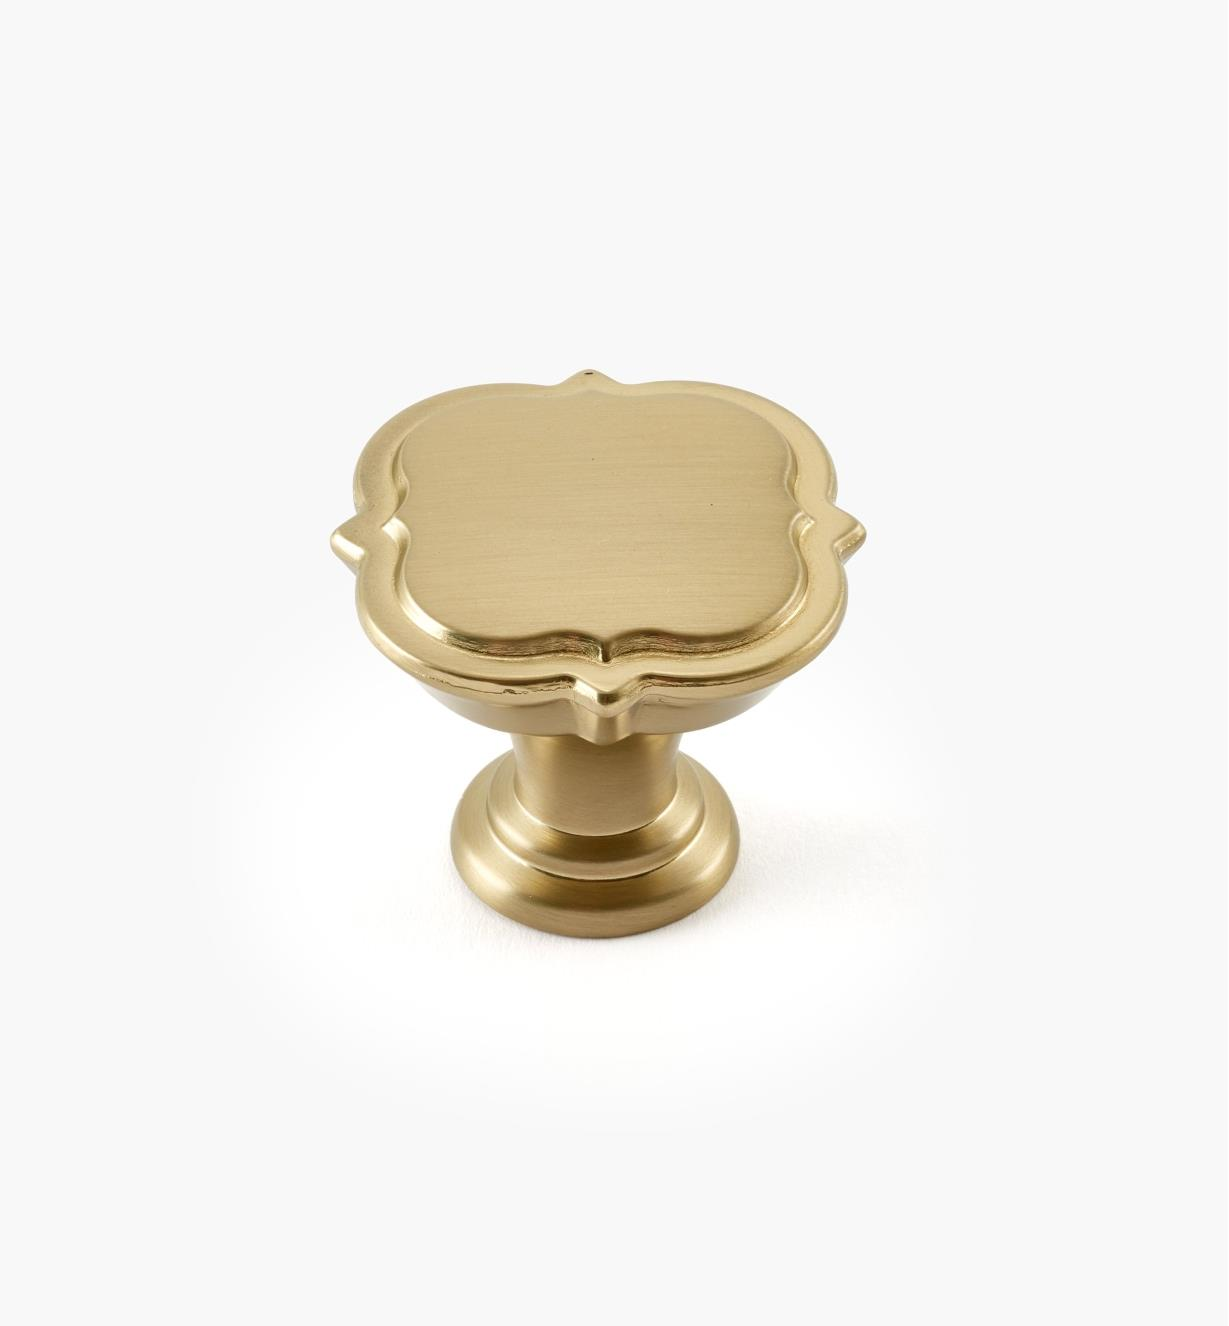 "02A1705 - Grace Revitalize Golden Champagne 1 3/8"" Knob, each"